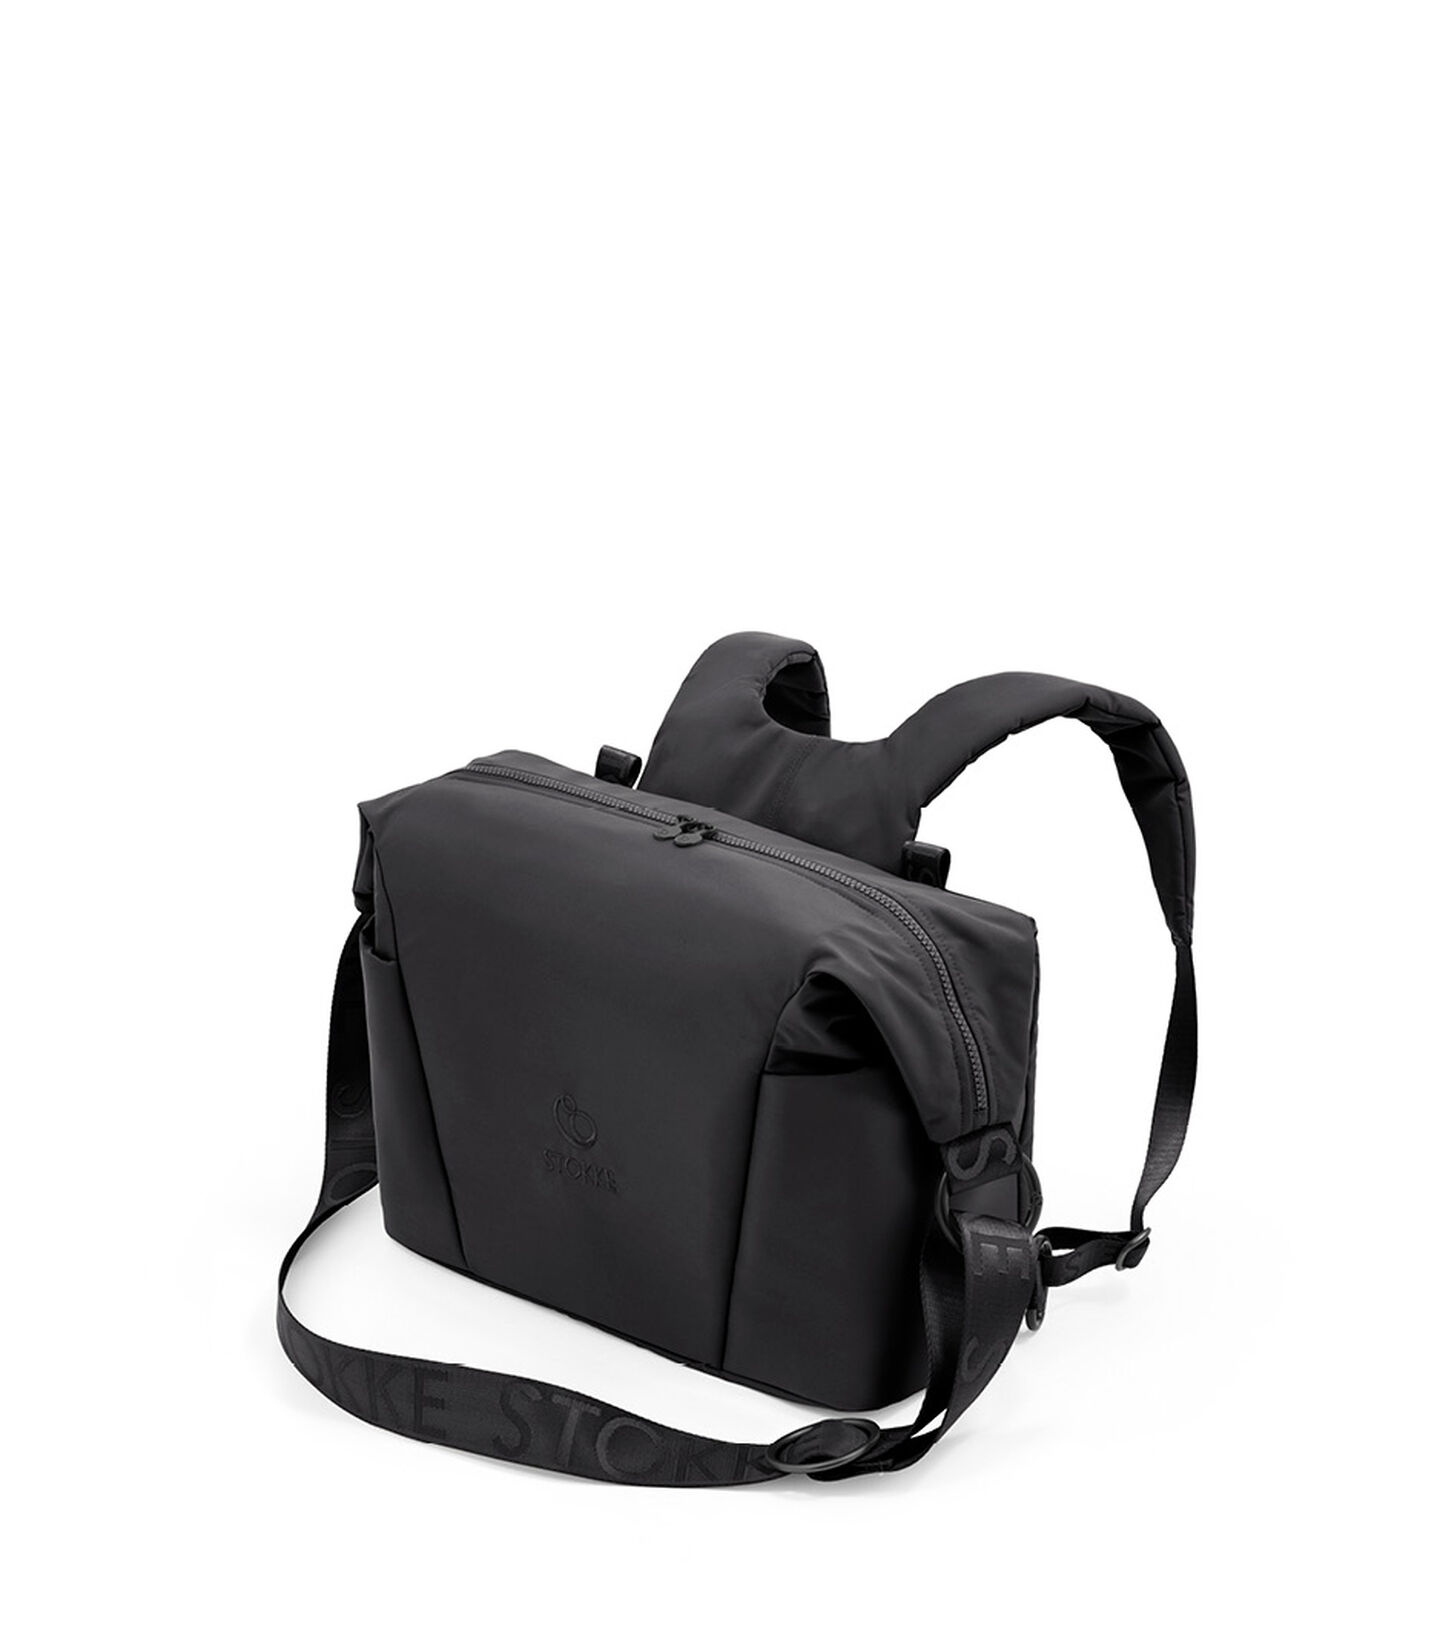 Stokke® Xplory® X Changing Bag Rich Black. Accessories.  view 2